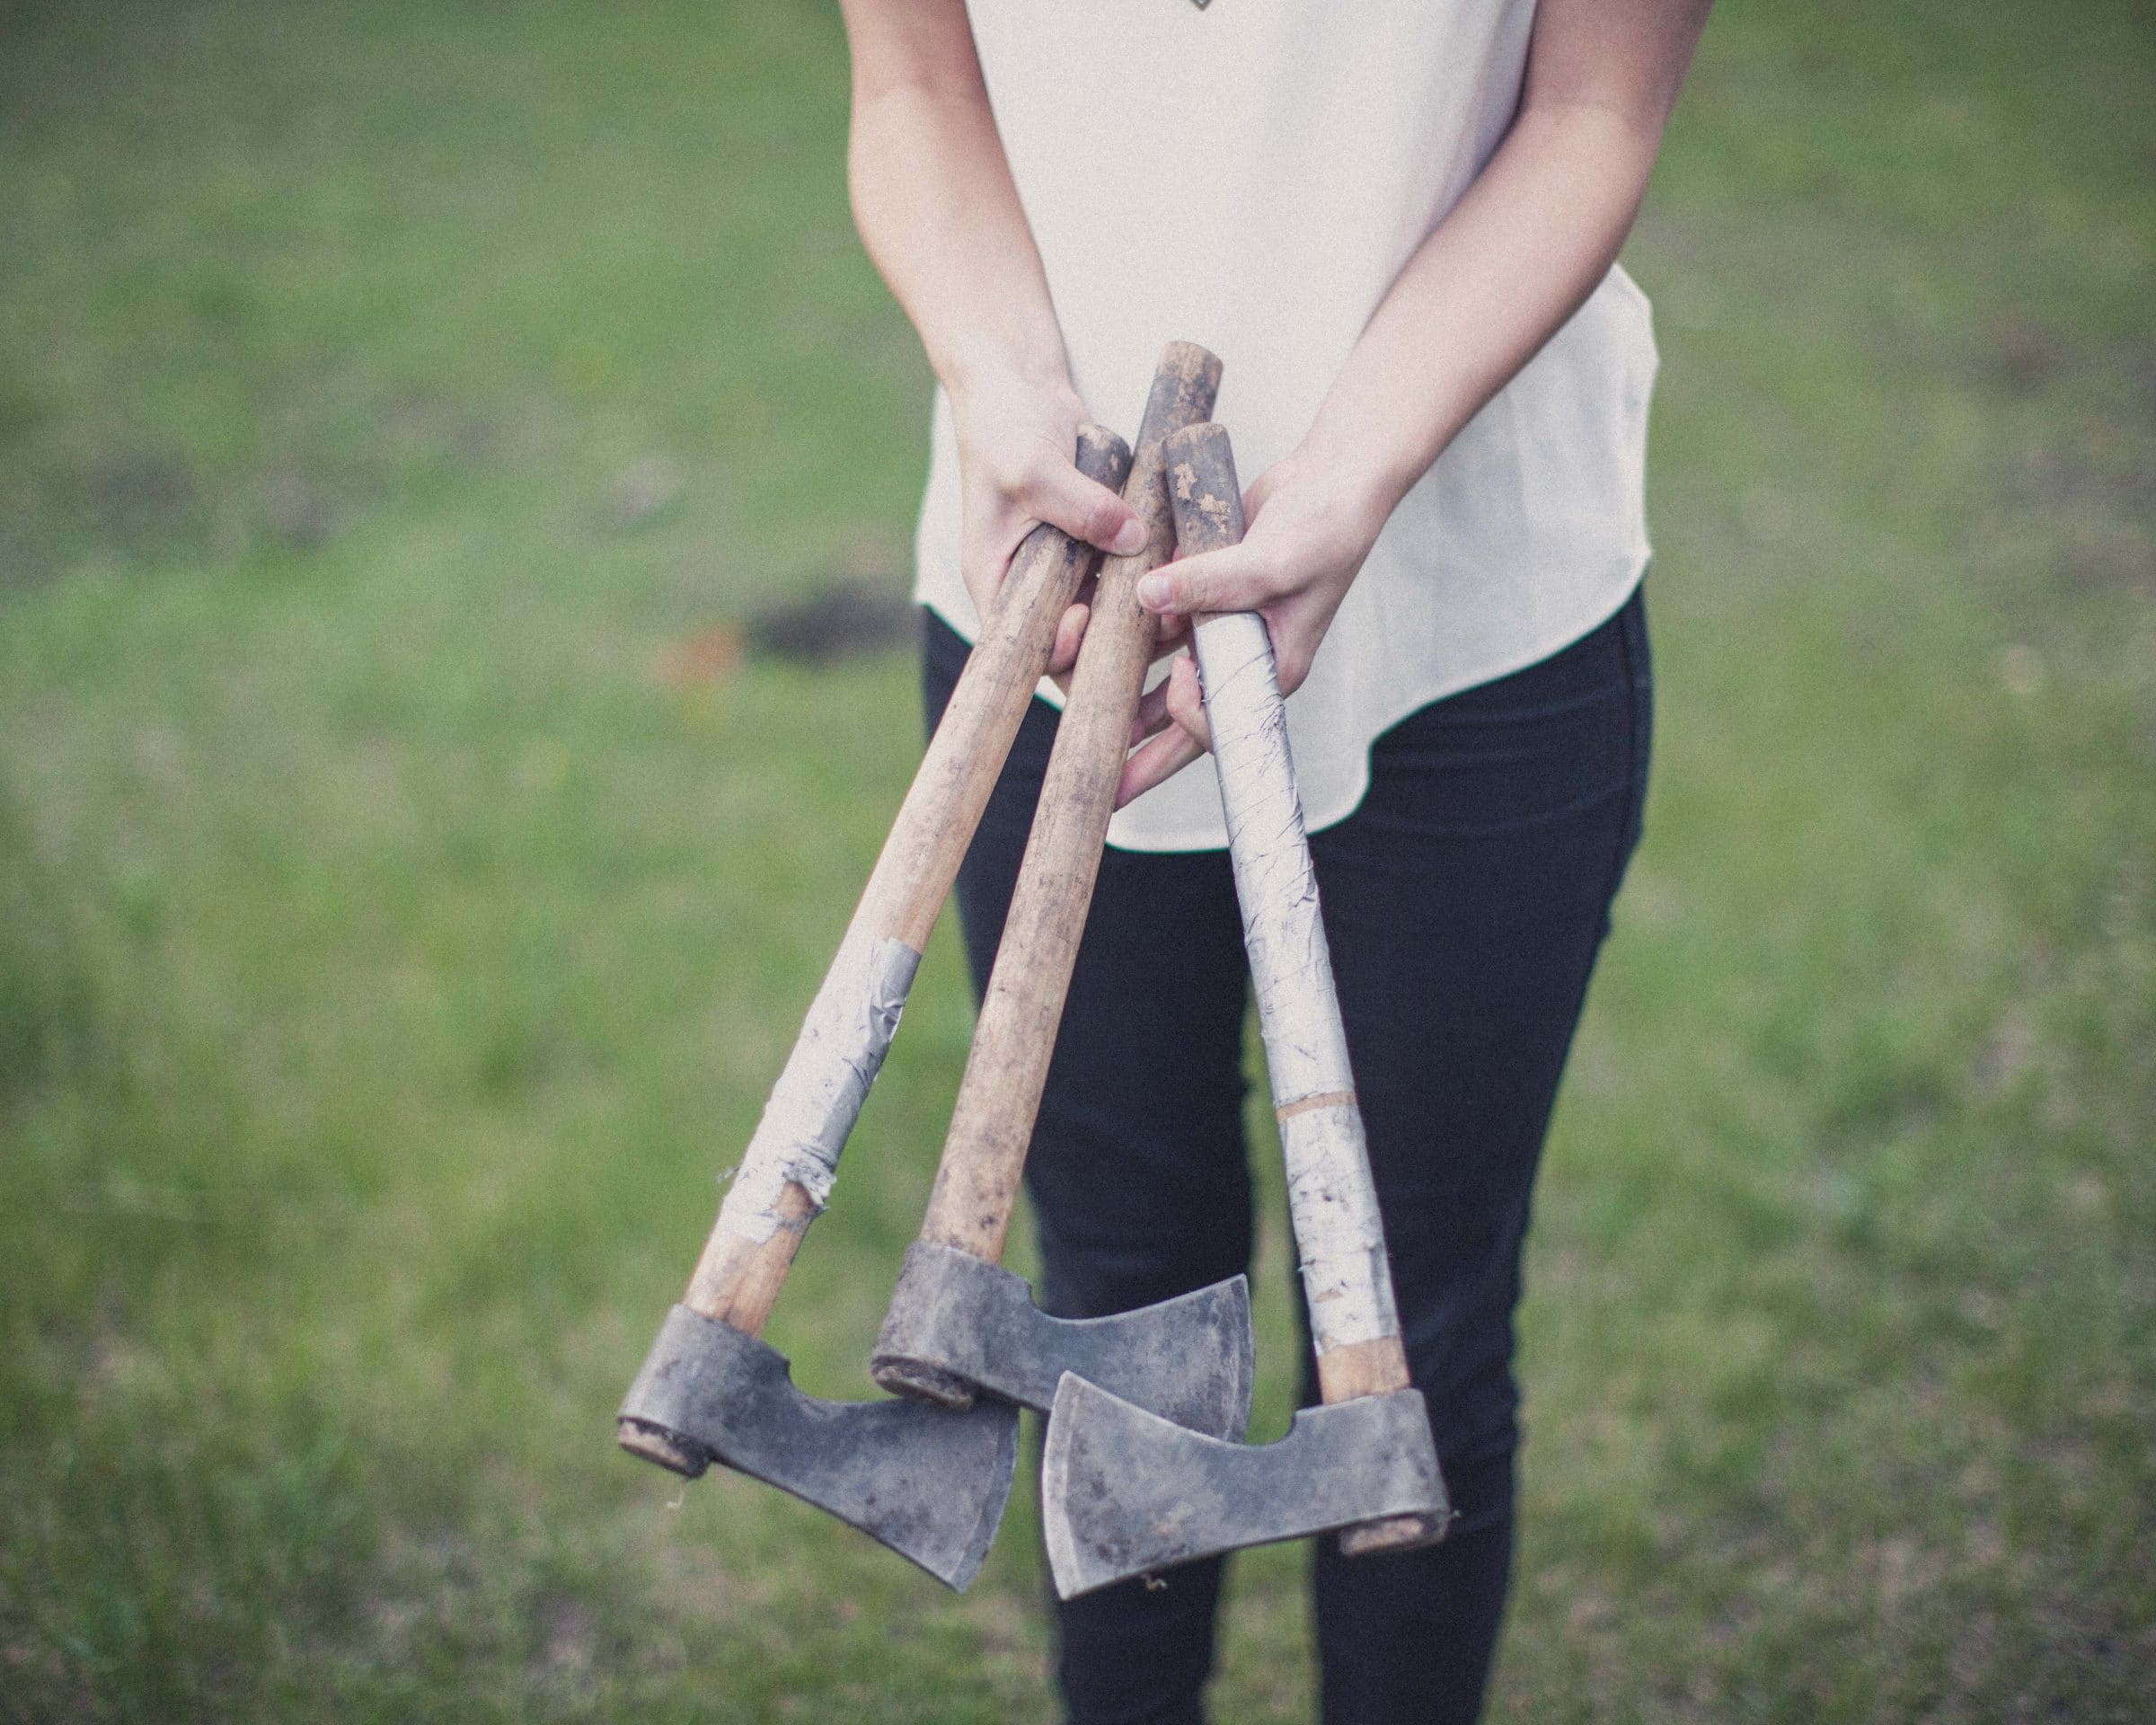 An adult holds three hatchets by the handle out in front of them.